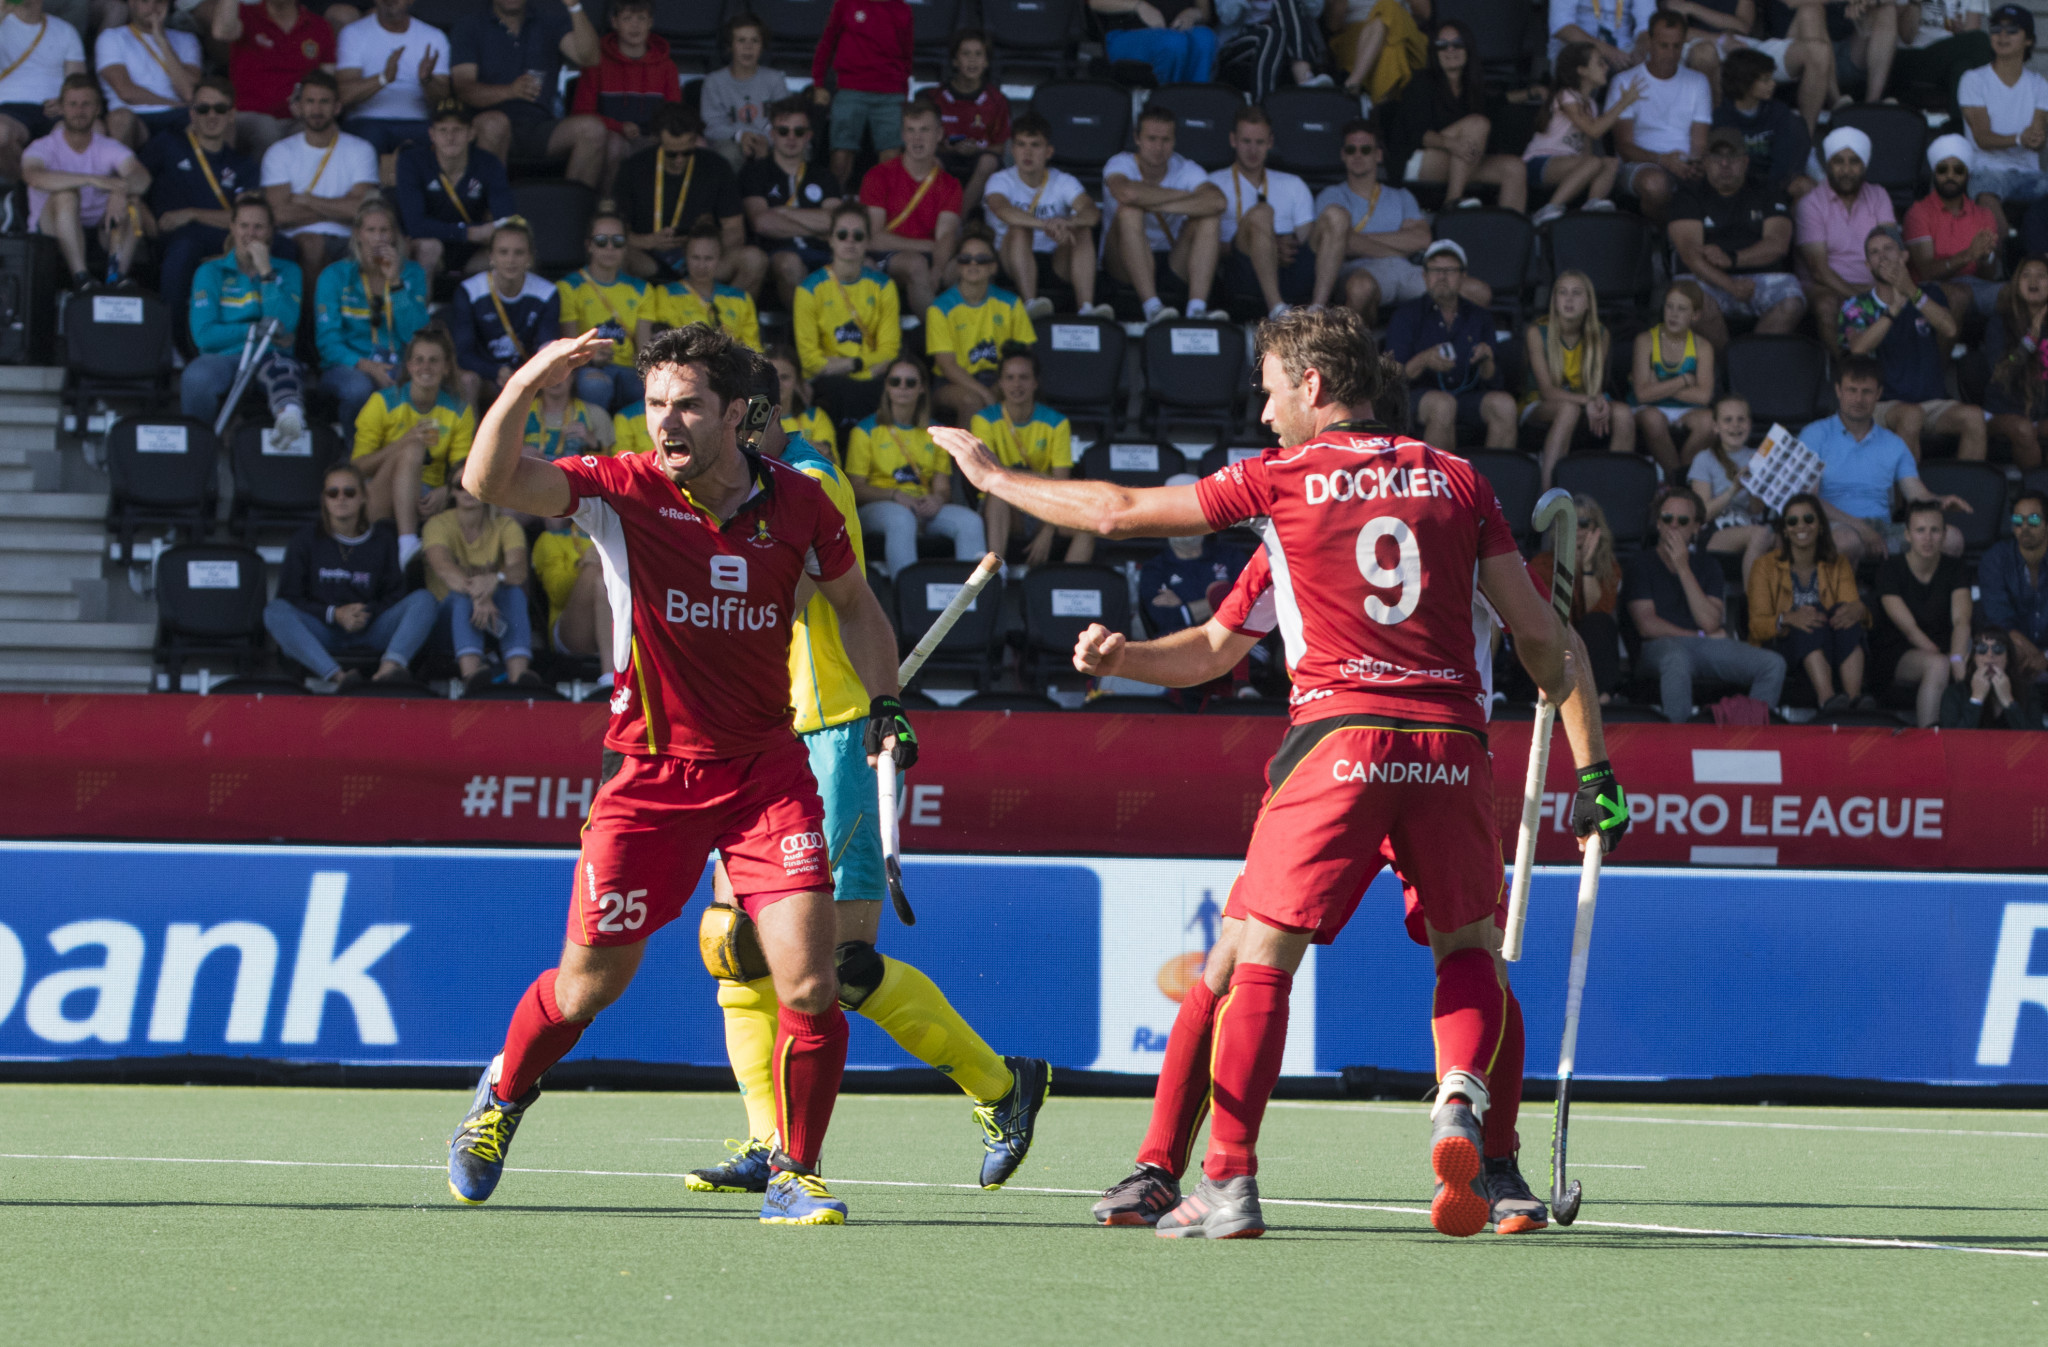 Launch is set to coincide with the resumption of live international hockey following the COVID-19-induced shutdown ©Getty Images